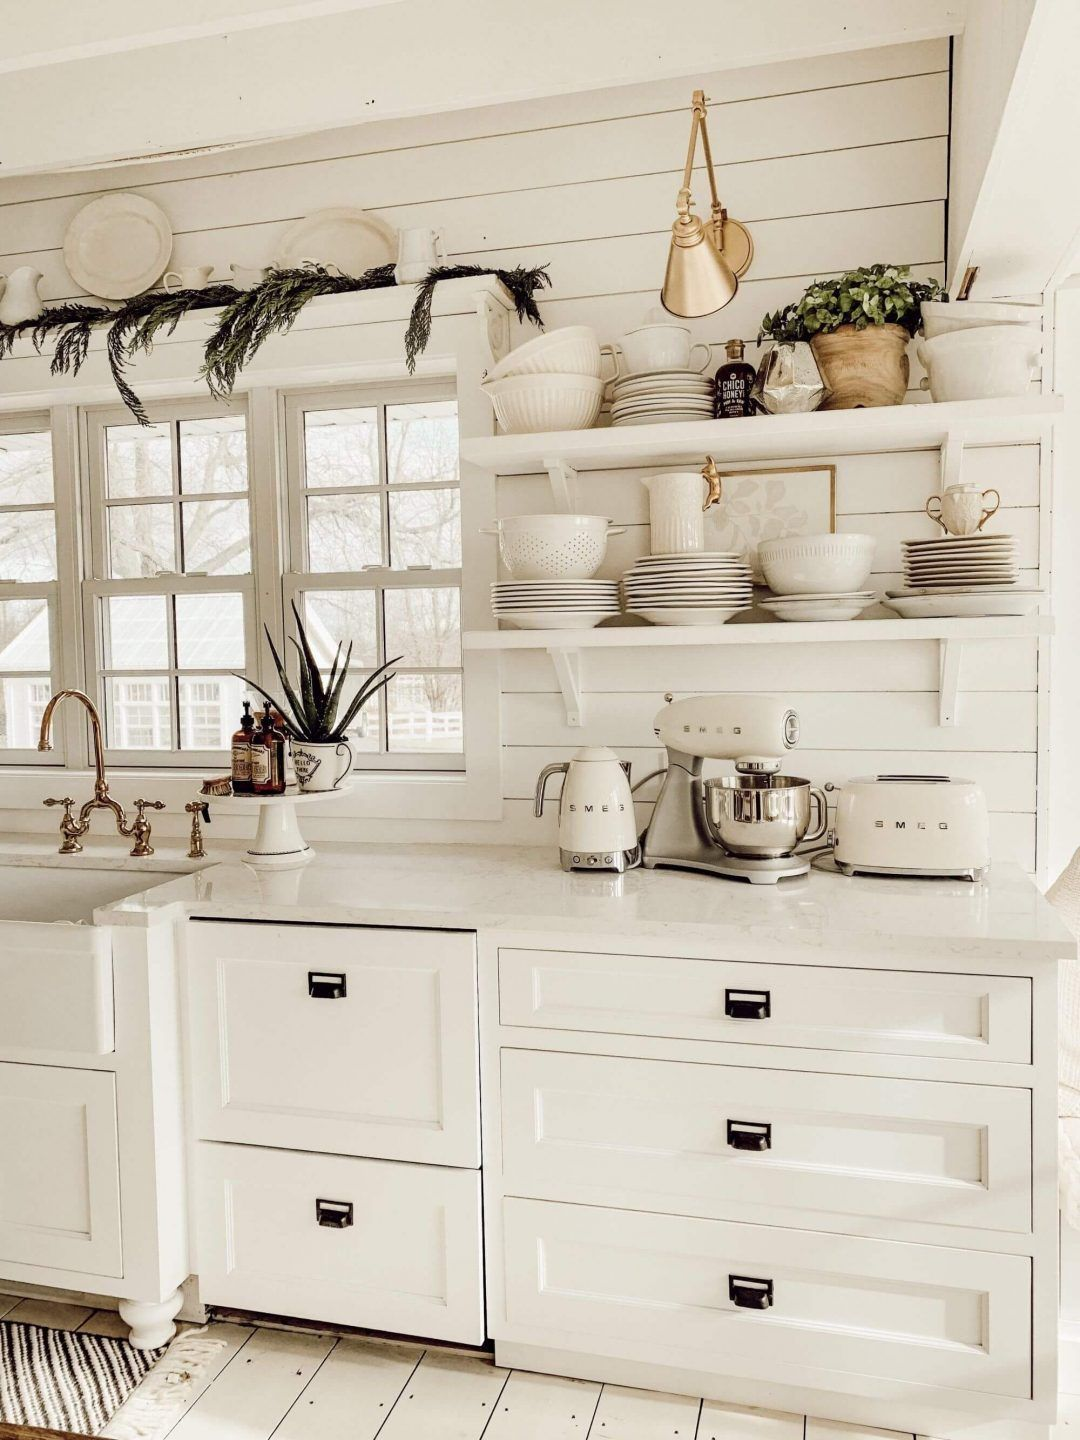 25 Bewildering Farmhouse Kitchen Designs (Traditional Beauties!) - 644B7Ee9691799Ee4Caca44341637A6B